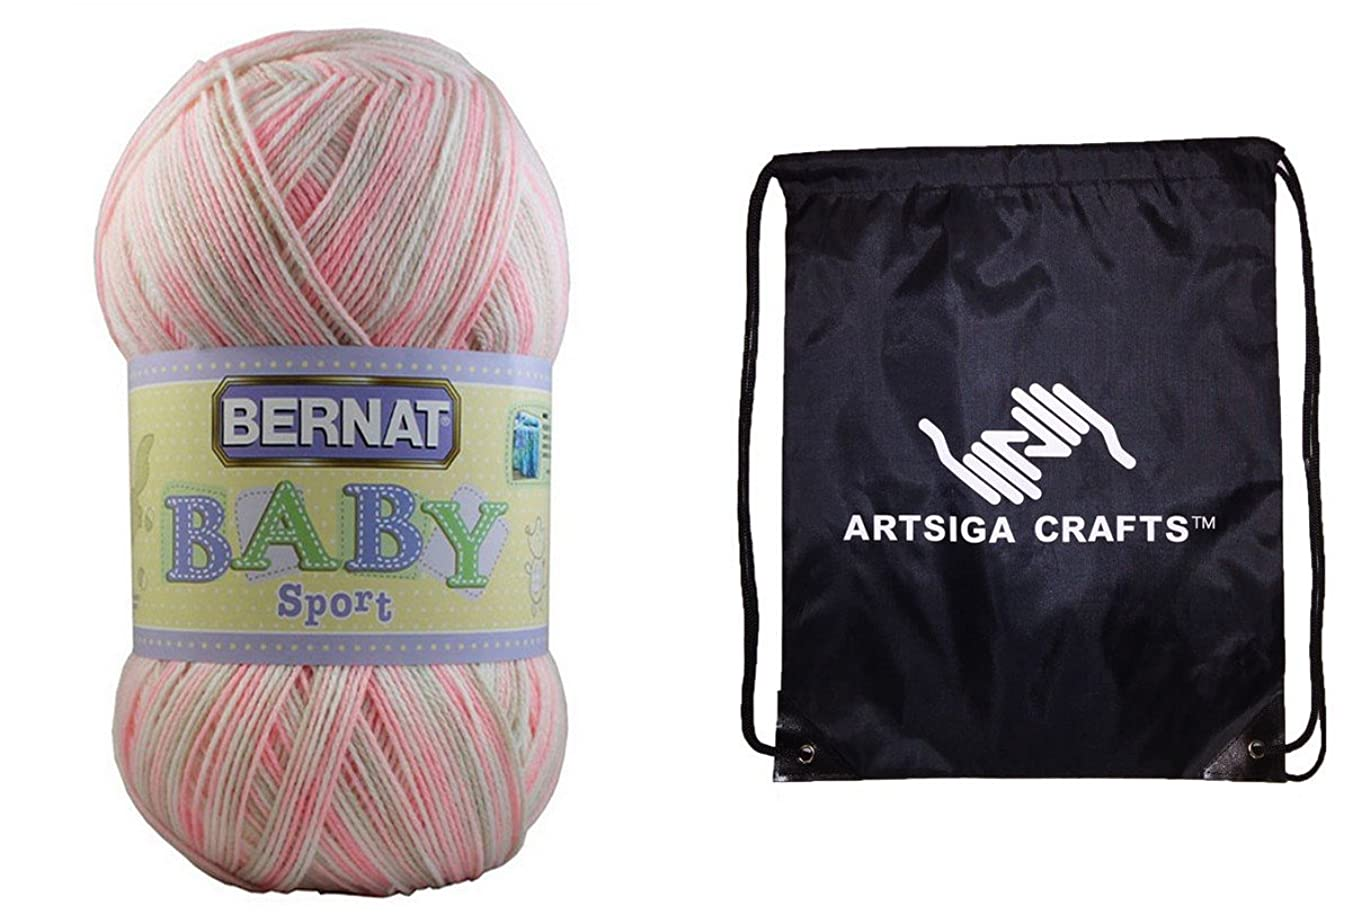 Bernat Baby Sport Big Ball Yarn (1-Pack) Ombres Blossom 163124-24414 Bundle with 1 Artsiga Crafts Project Bag